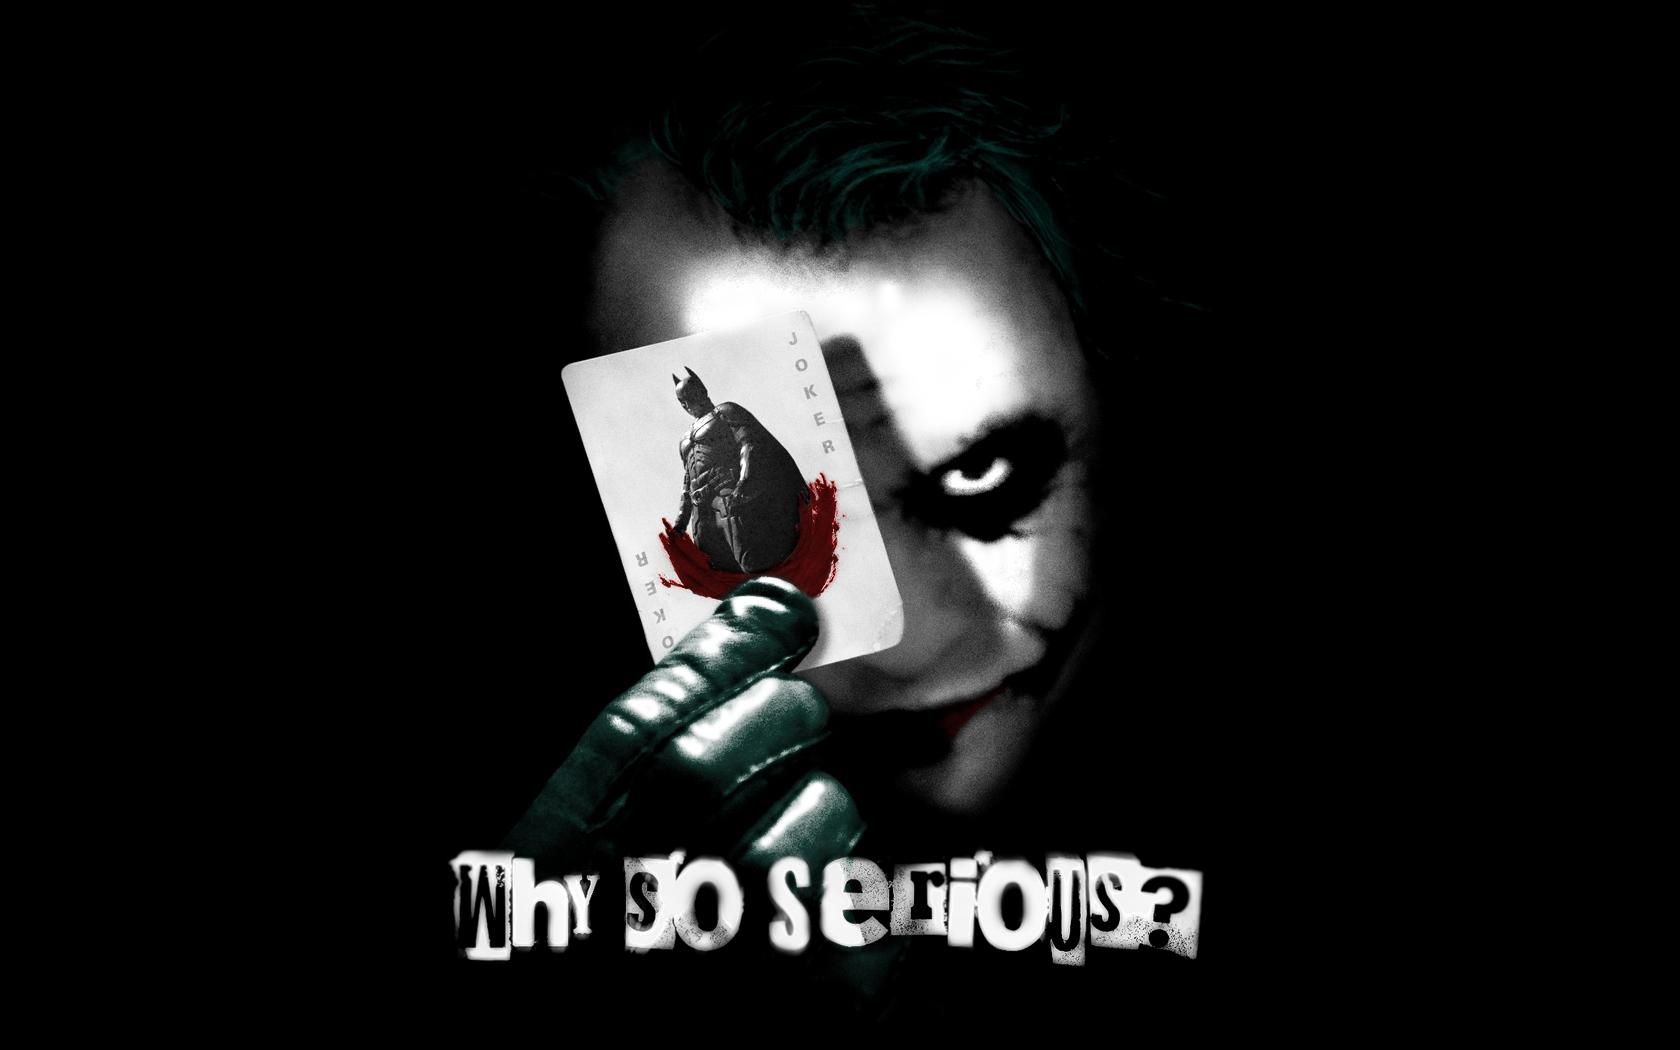 Why So Serious ?? Joker Wallpaper And Background Image